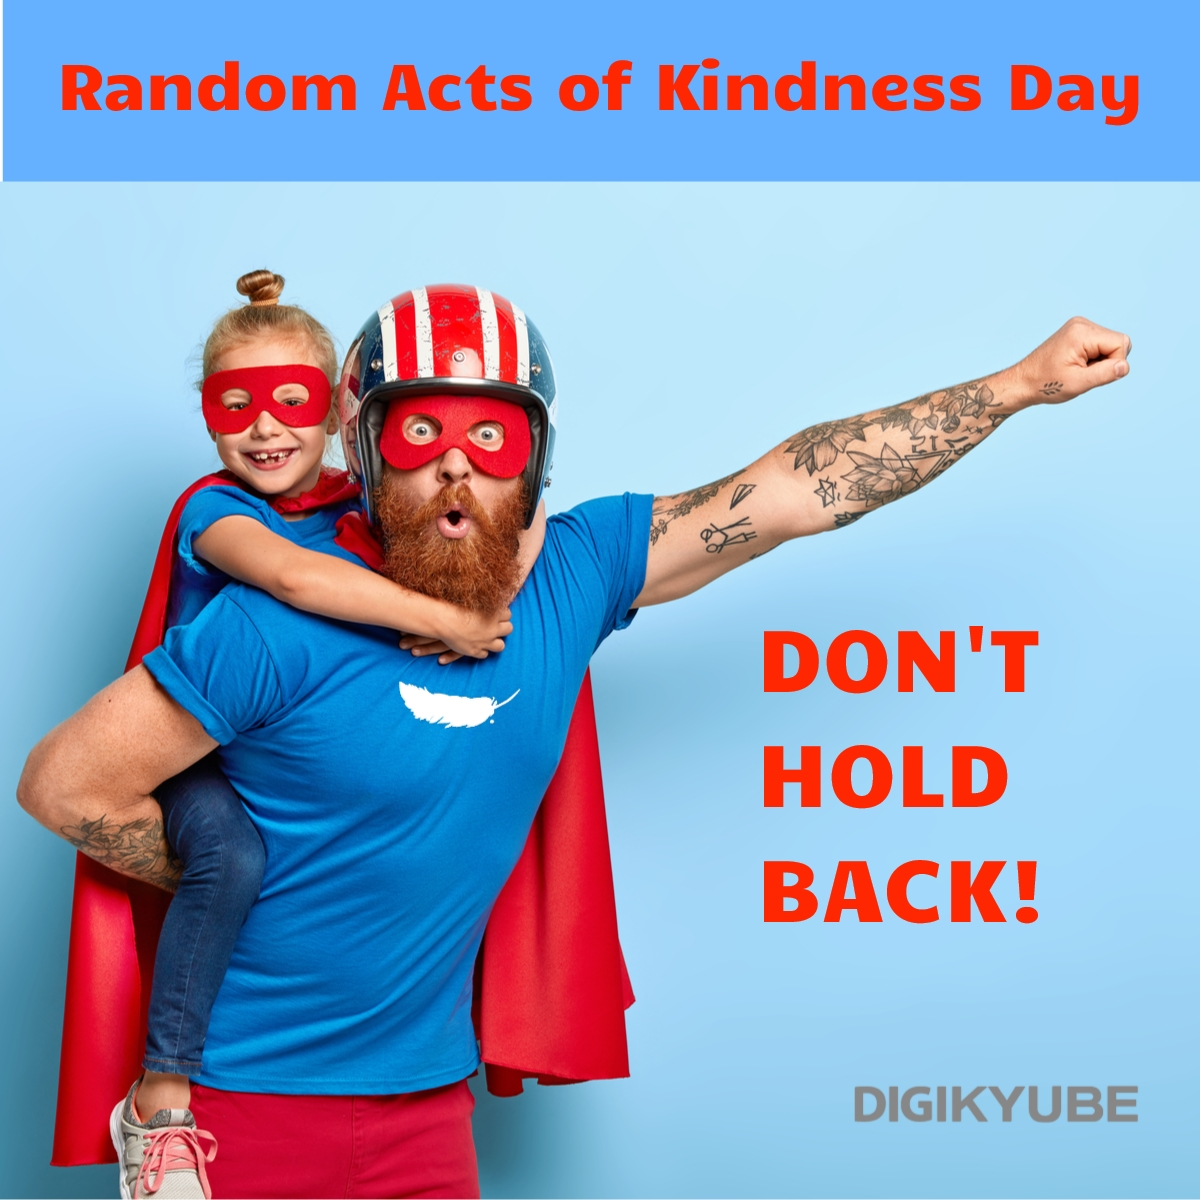 DONT HOLD BACK! #RandomActsOfKindnessDay   Please share to encourage others  #RAoKD  You want more free time to enjoy doing random acts of kindness?  Let us manage your social media so that you can focus on what matters.  @digikyube      http://bit.ly/2YZe4Aj